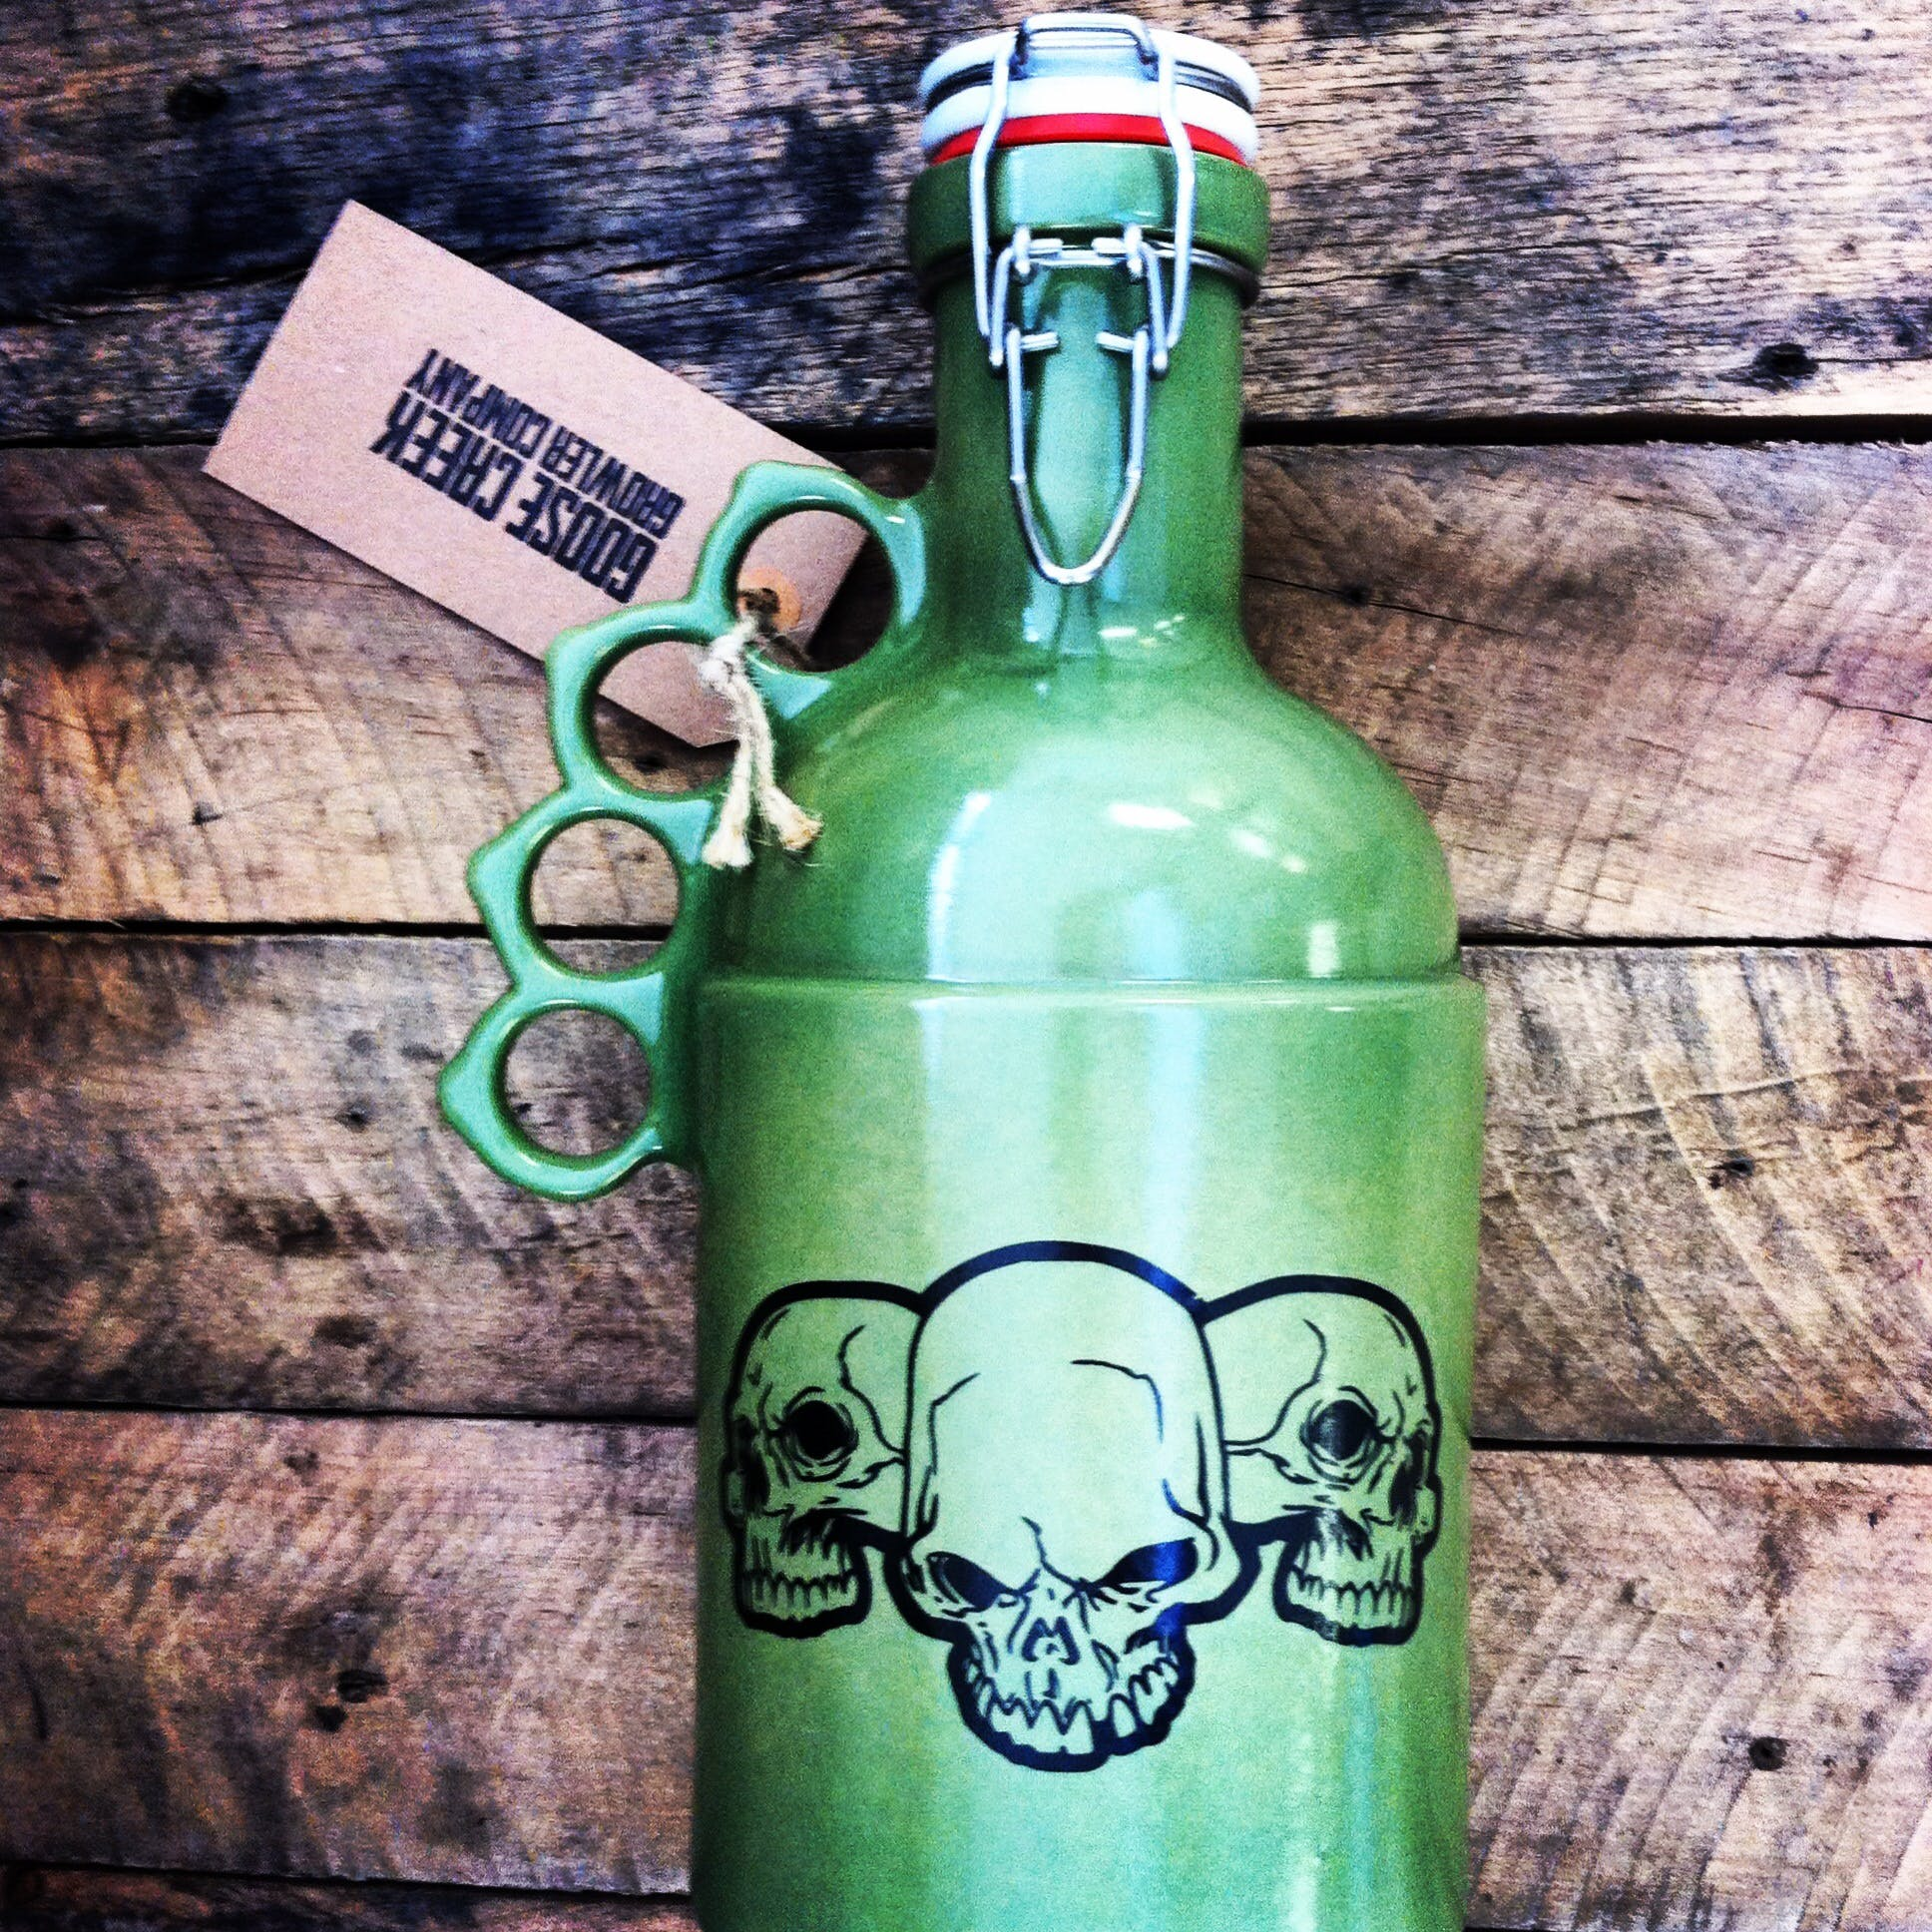 """Peacemaker in green with a custom skull image - """"The Peacemaker"""" - sold by Goose Creek Growler Co."""